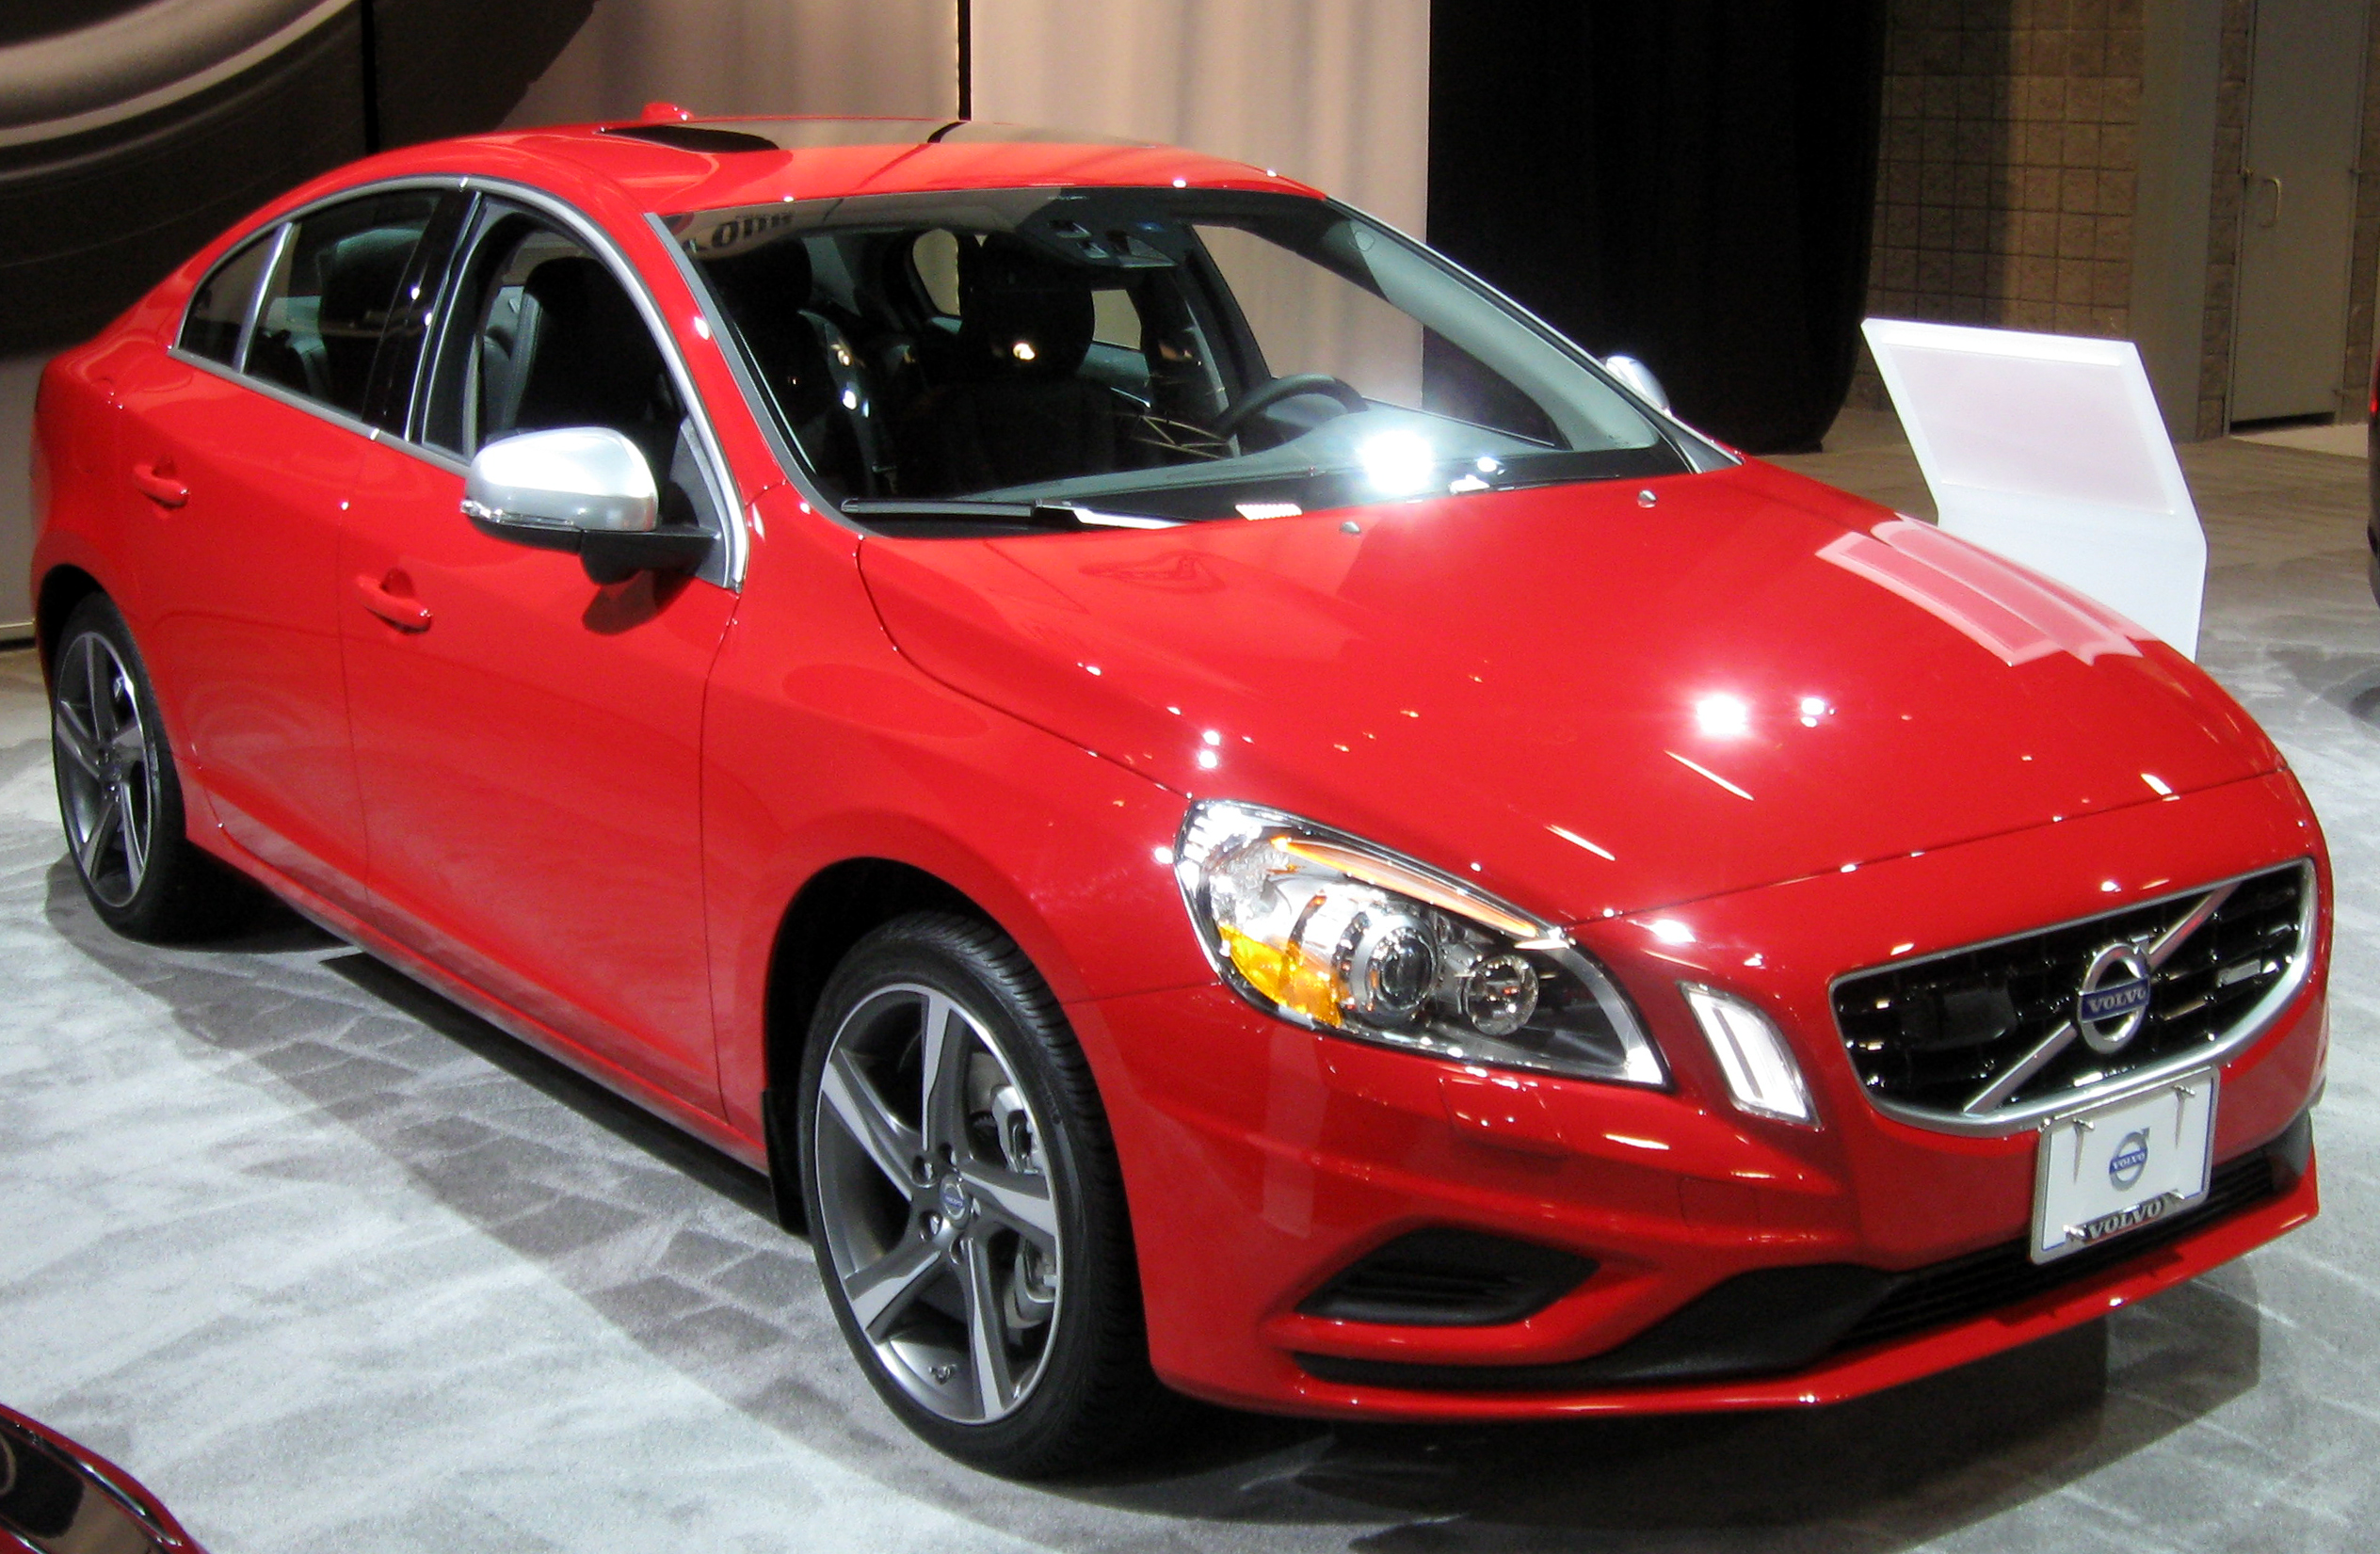 file 2012 volvo s60 t6 awd 2012 dc jpg wikimedia commons. Black Bedroom Furniture Sets. Home Design Ideas